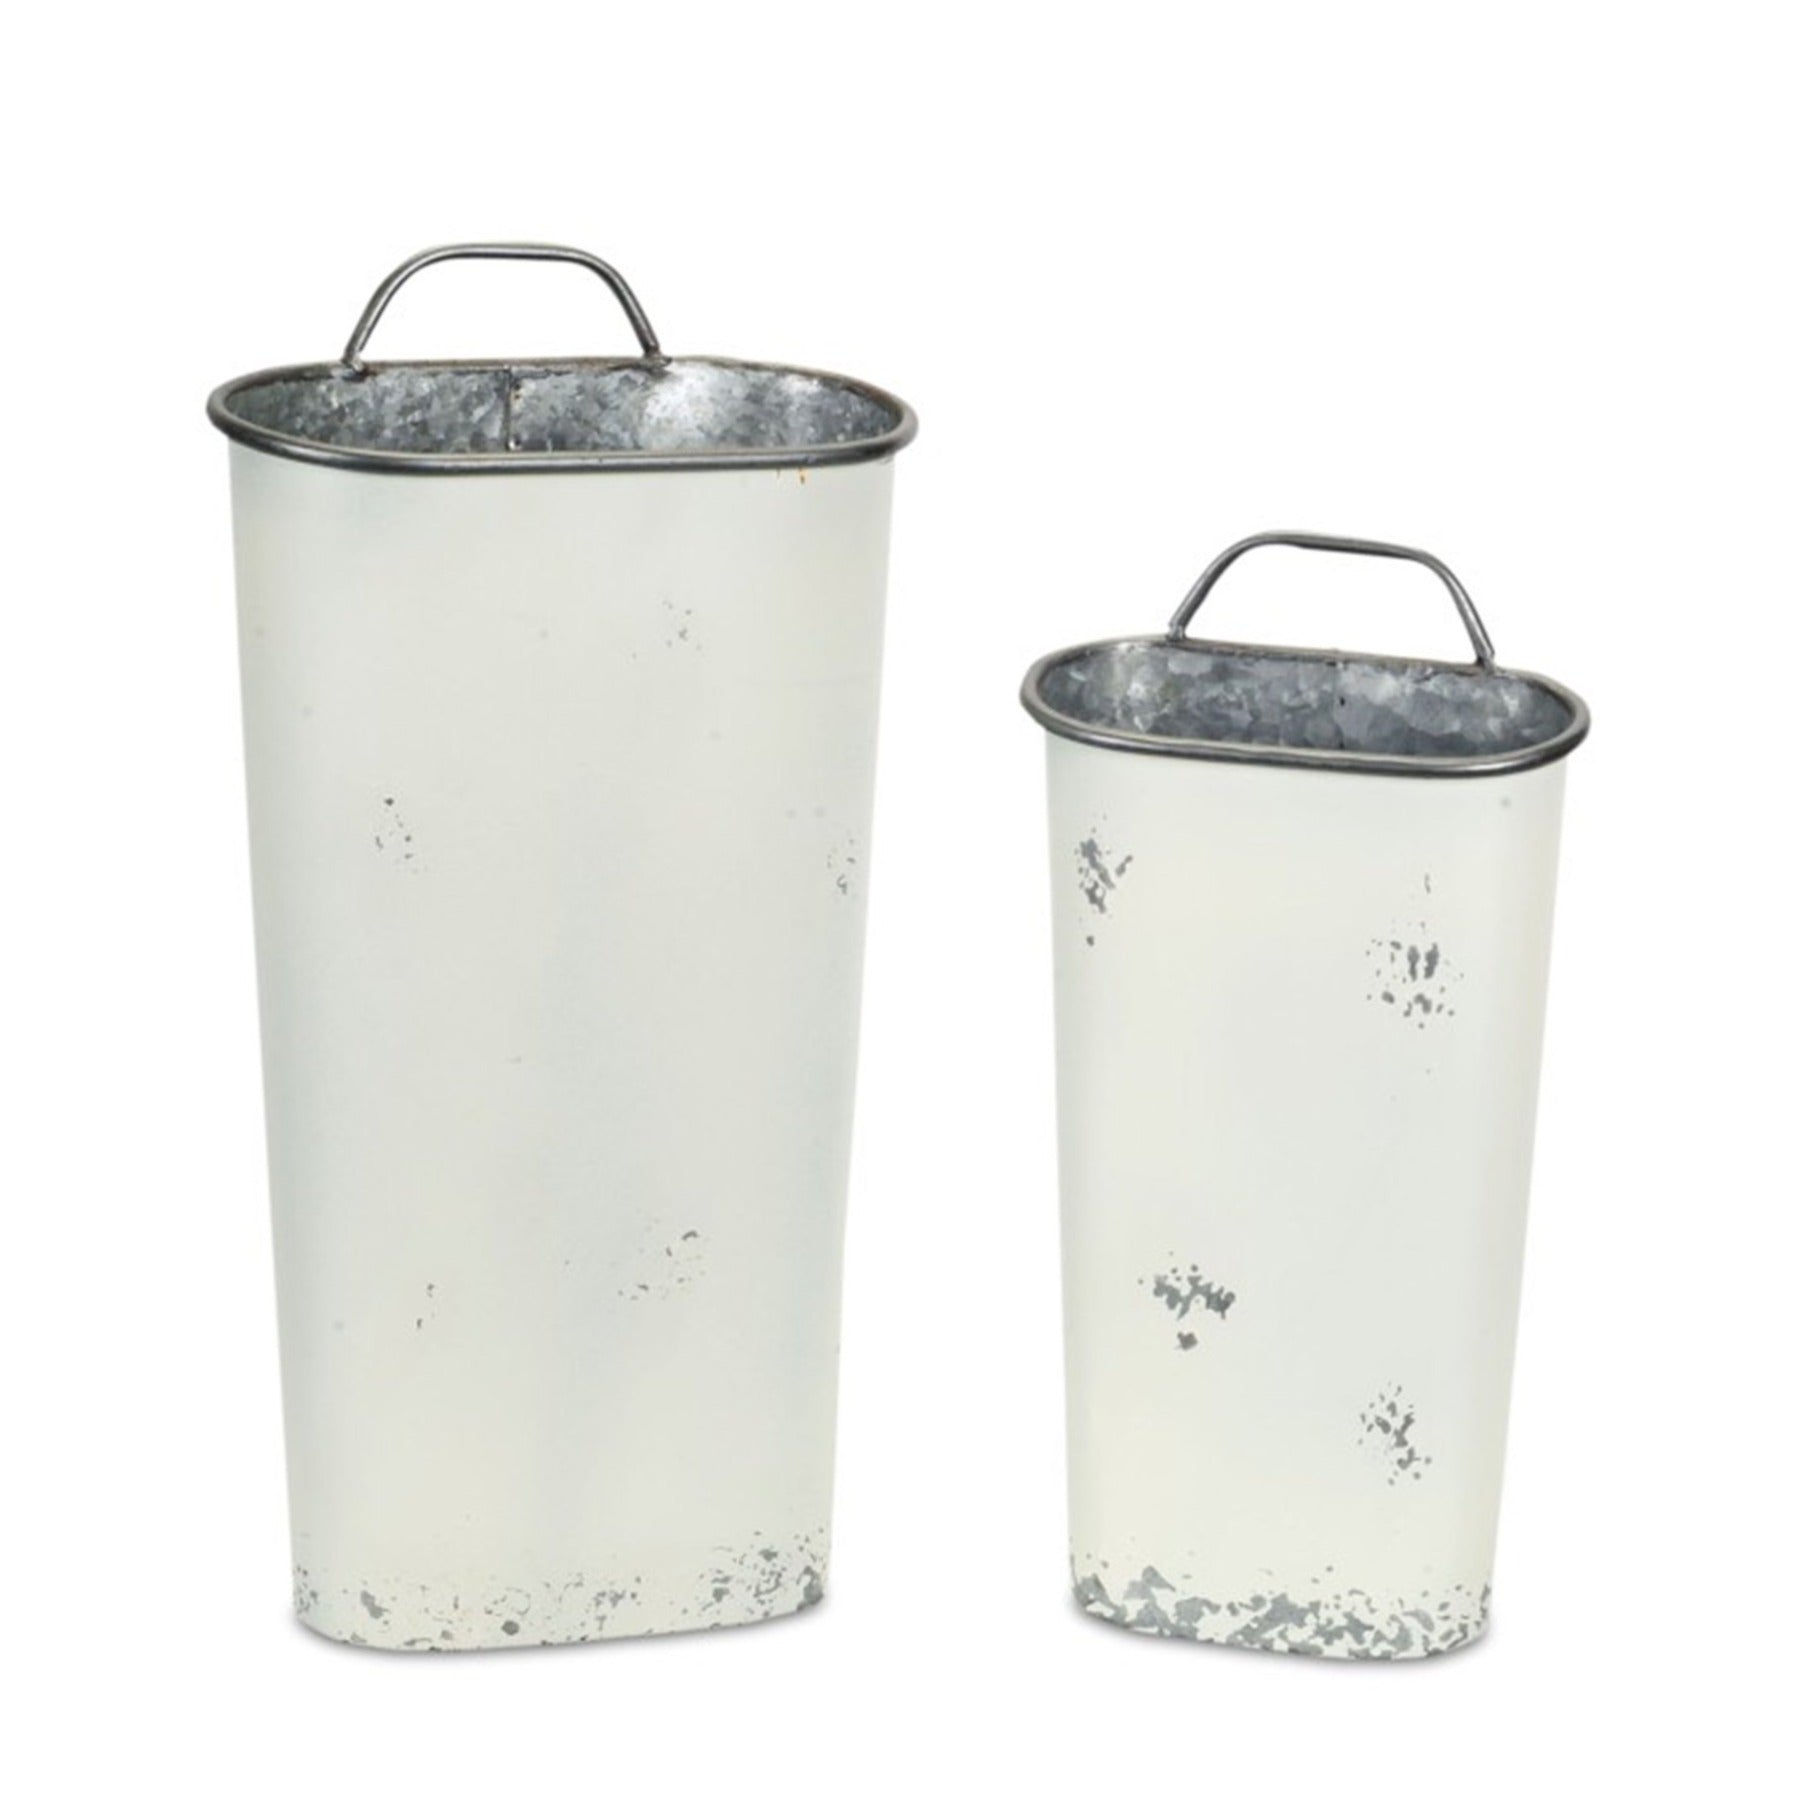 Chippy Metal Wall Bins - Set of 2